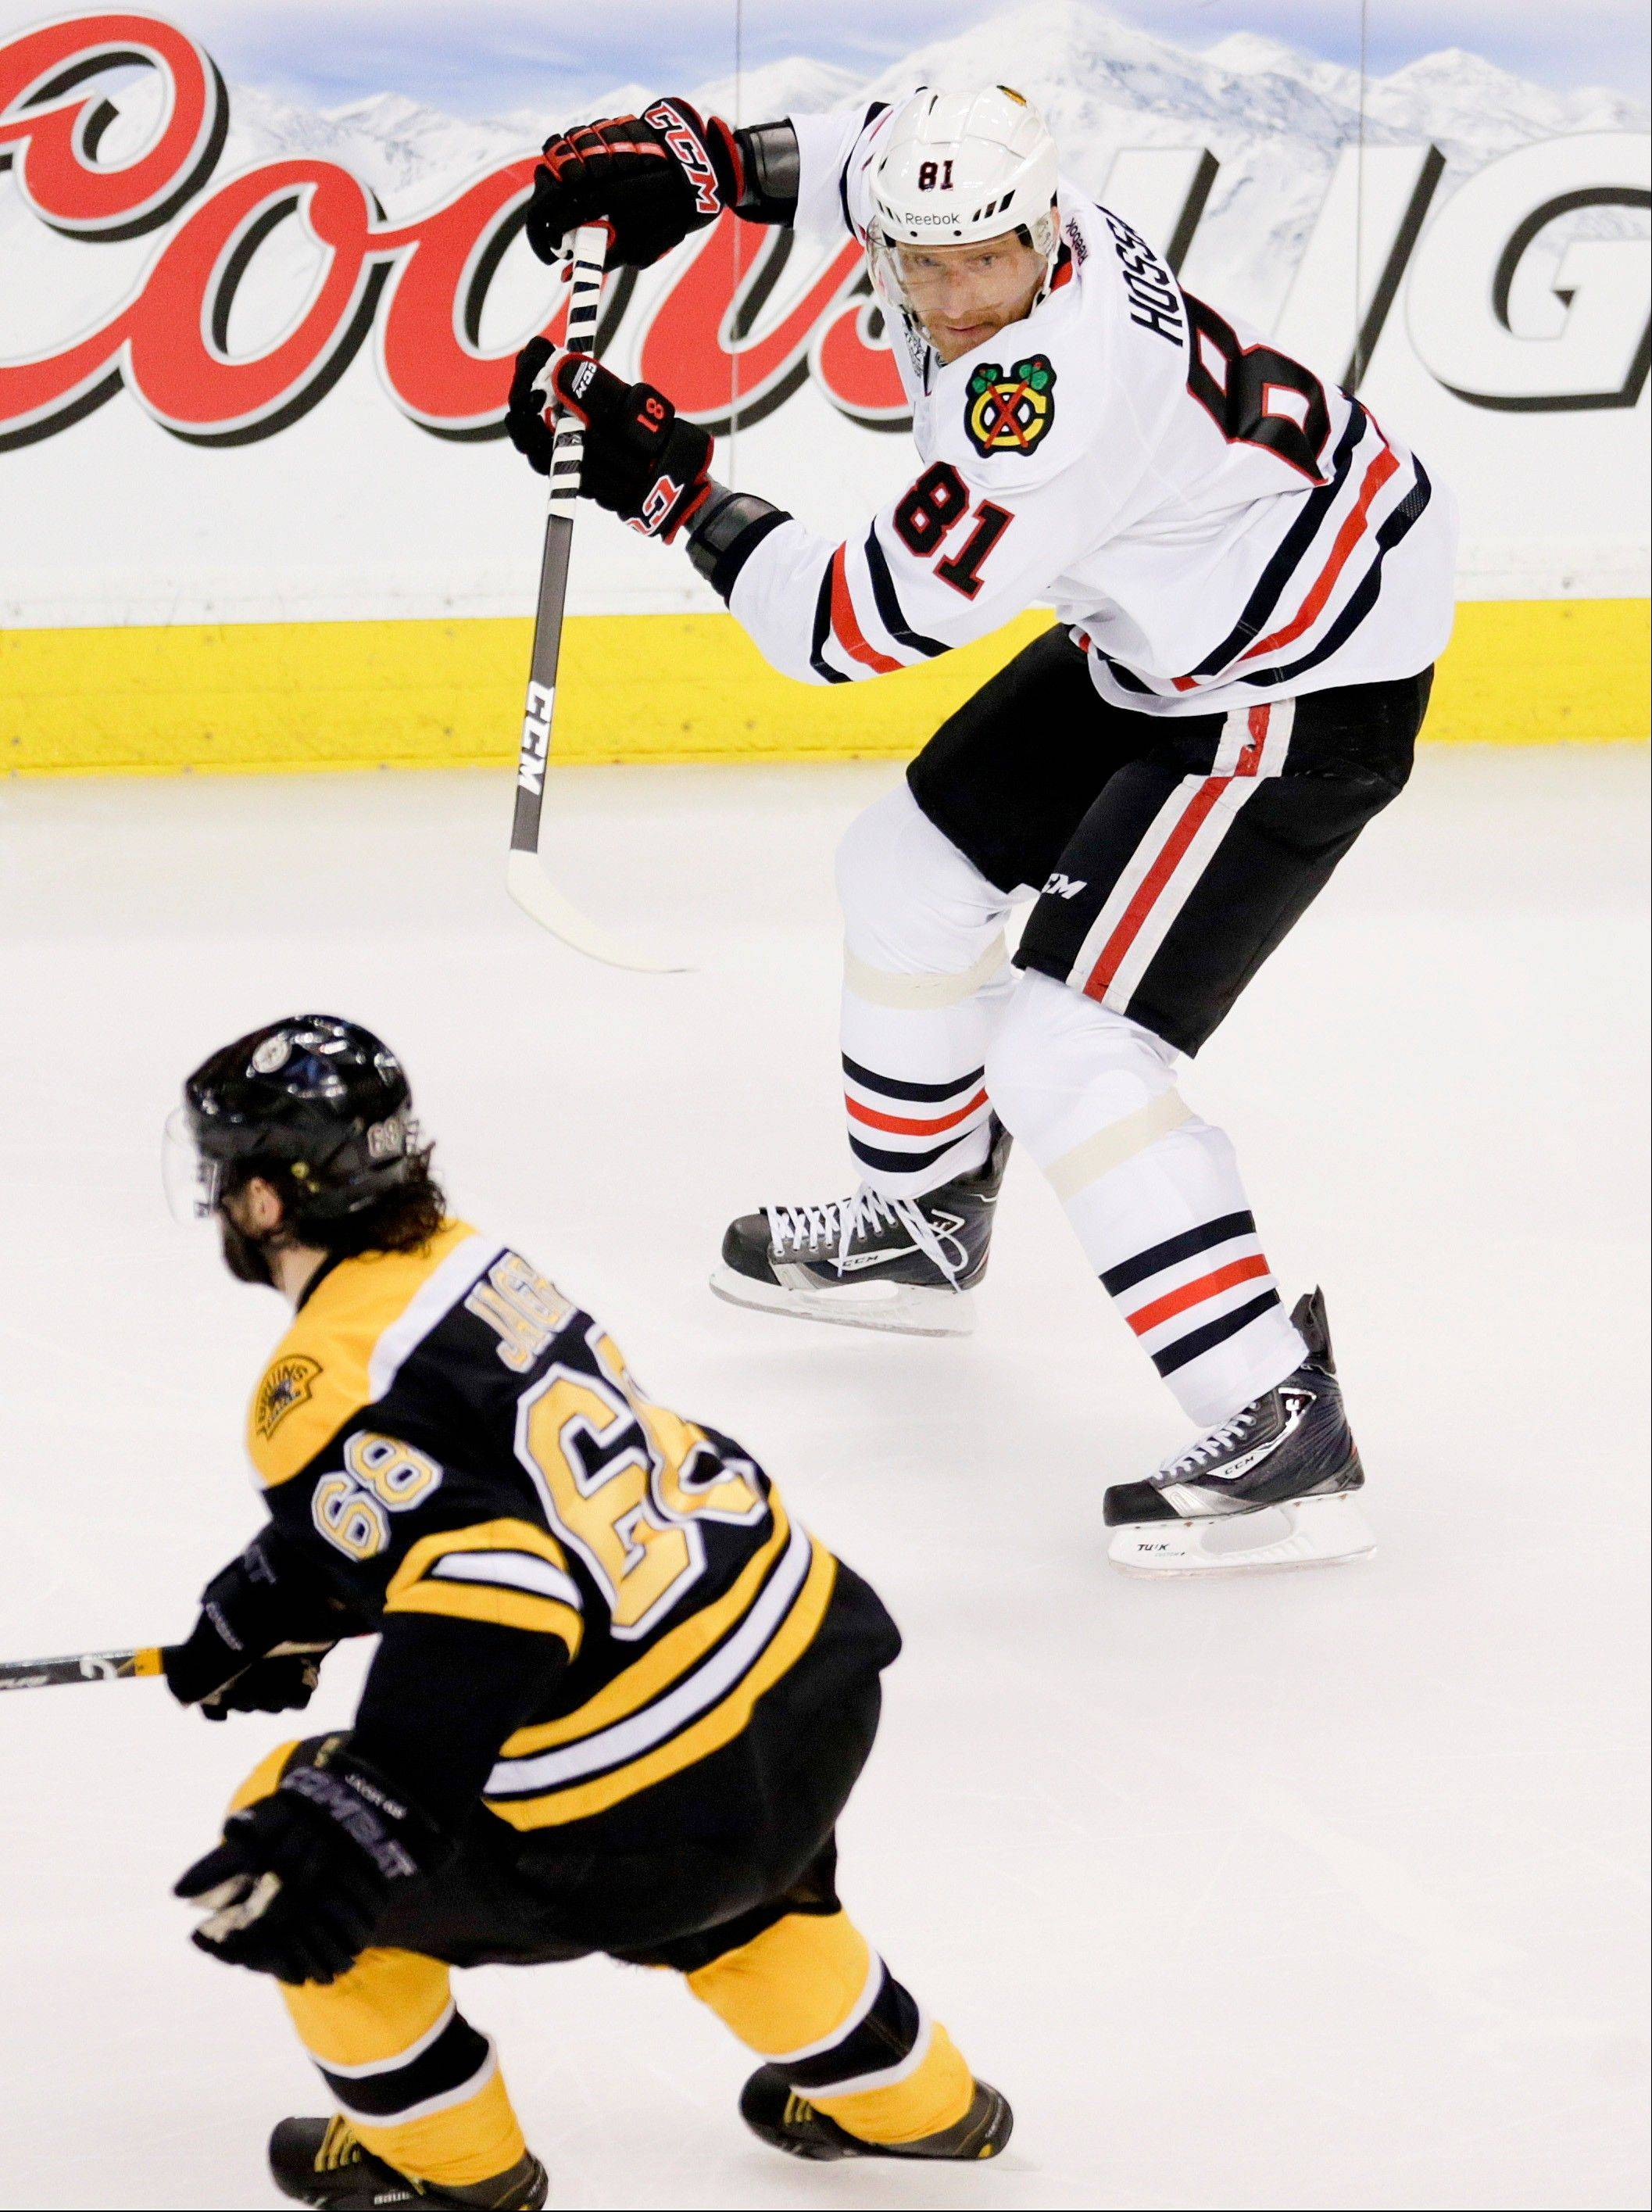 Blackhawks winger Marian Hossa looks for a pass Wednesday as Boston Bruins winger Jaromir Jagr defends in the first period of Game 4 of the Stanley Cup Final.